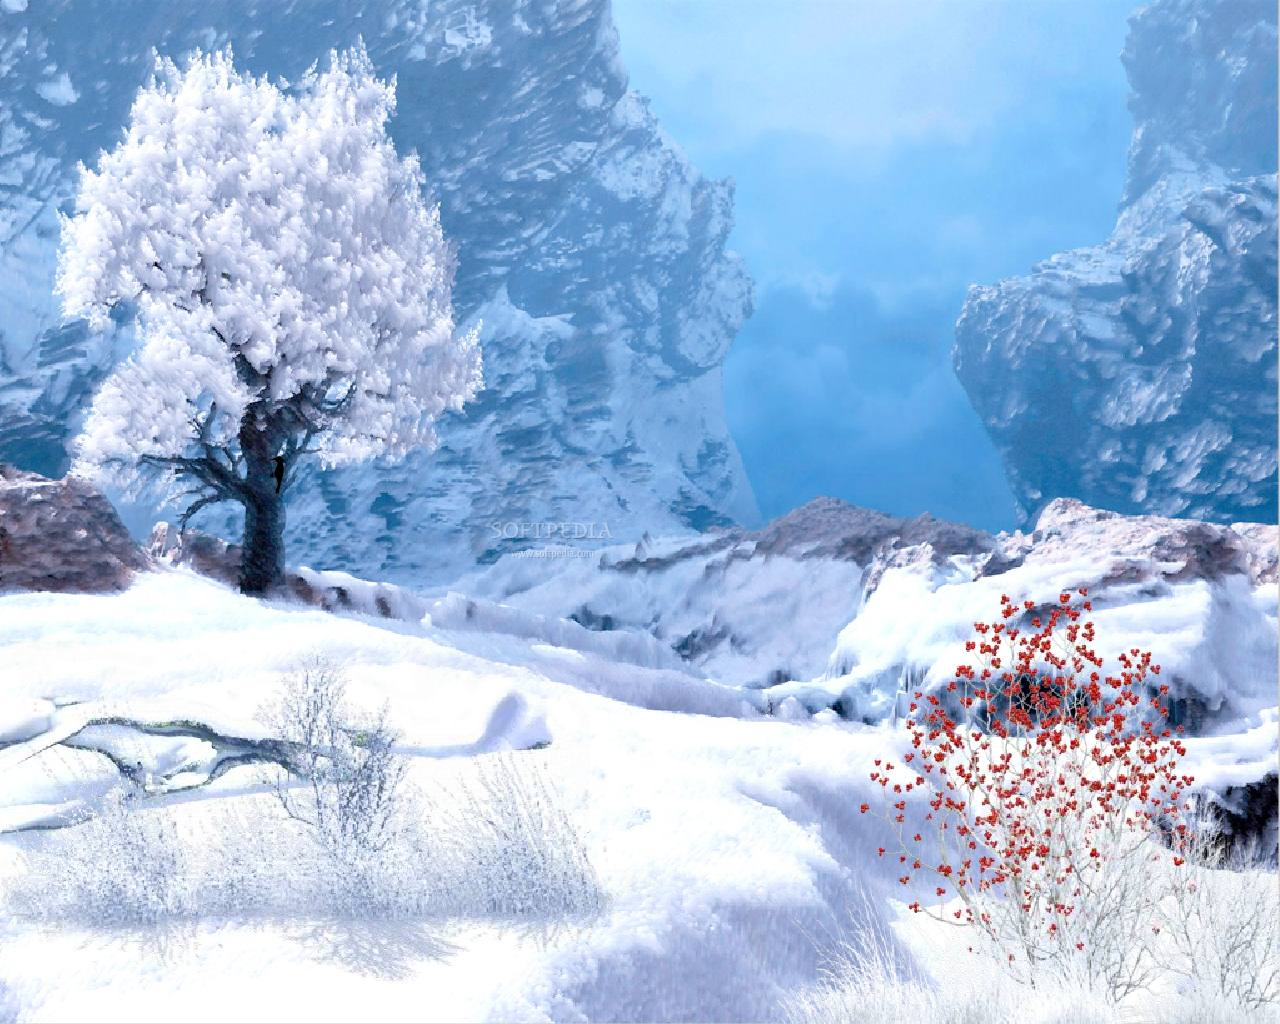 Winter Wallpaper Animated Winter in Mountain Animated Wallpaper Urban Art Wallpaper